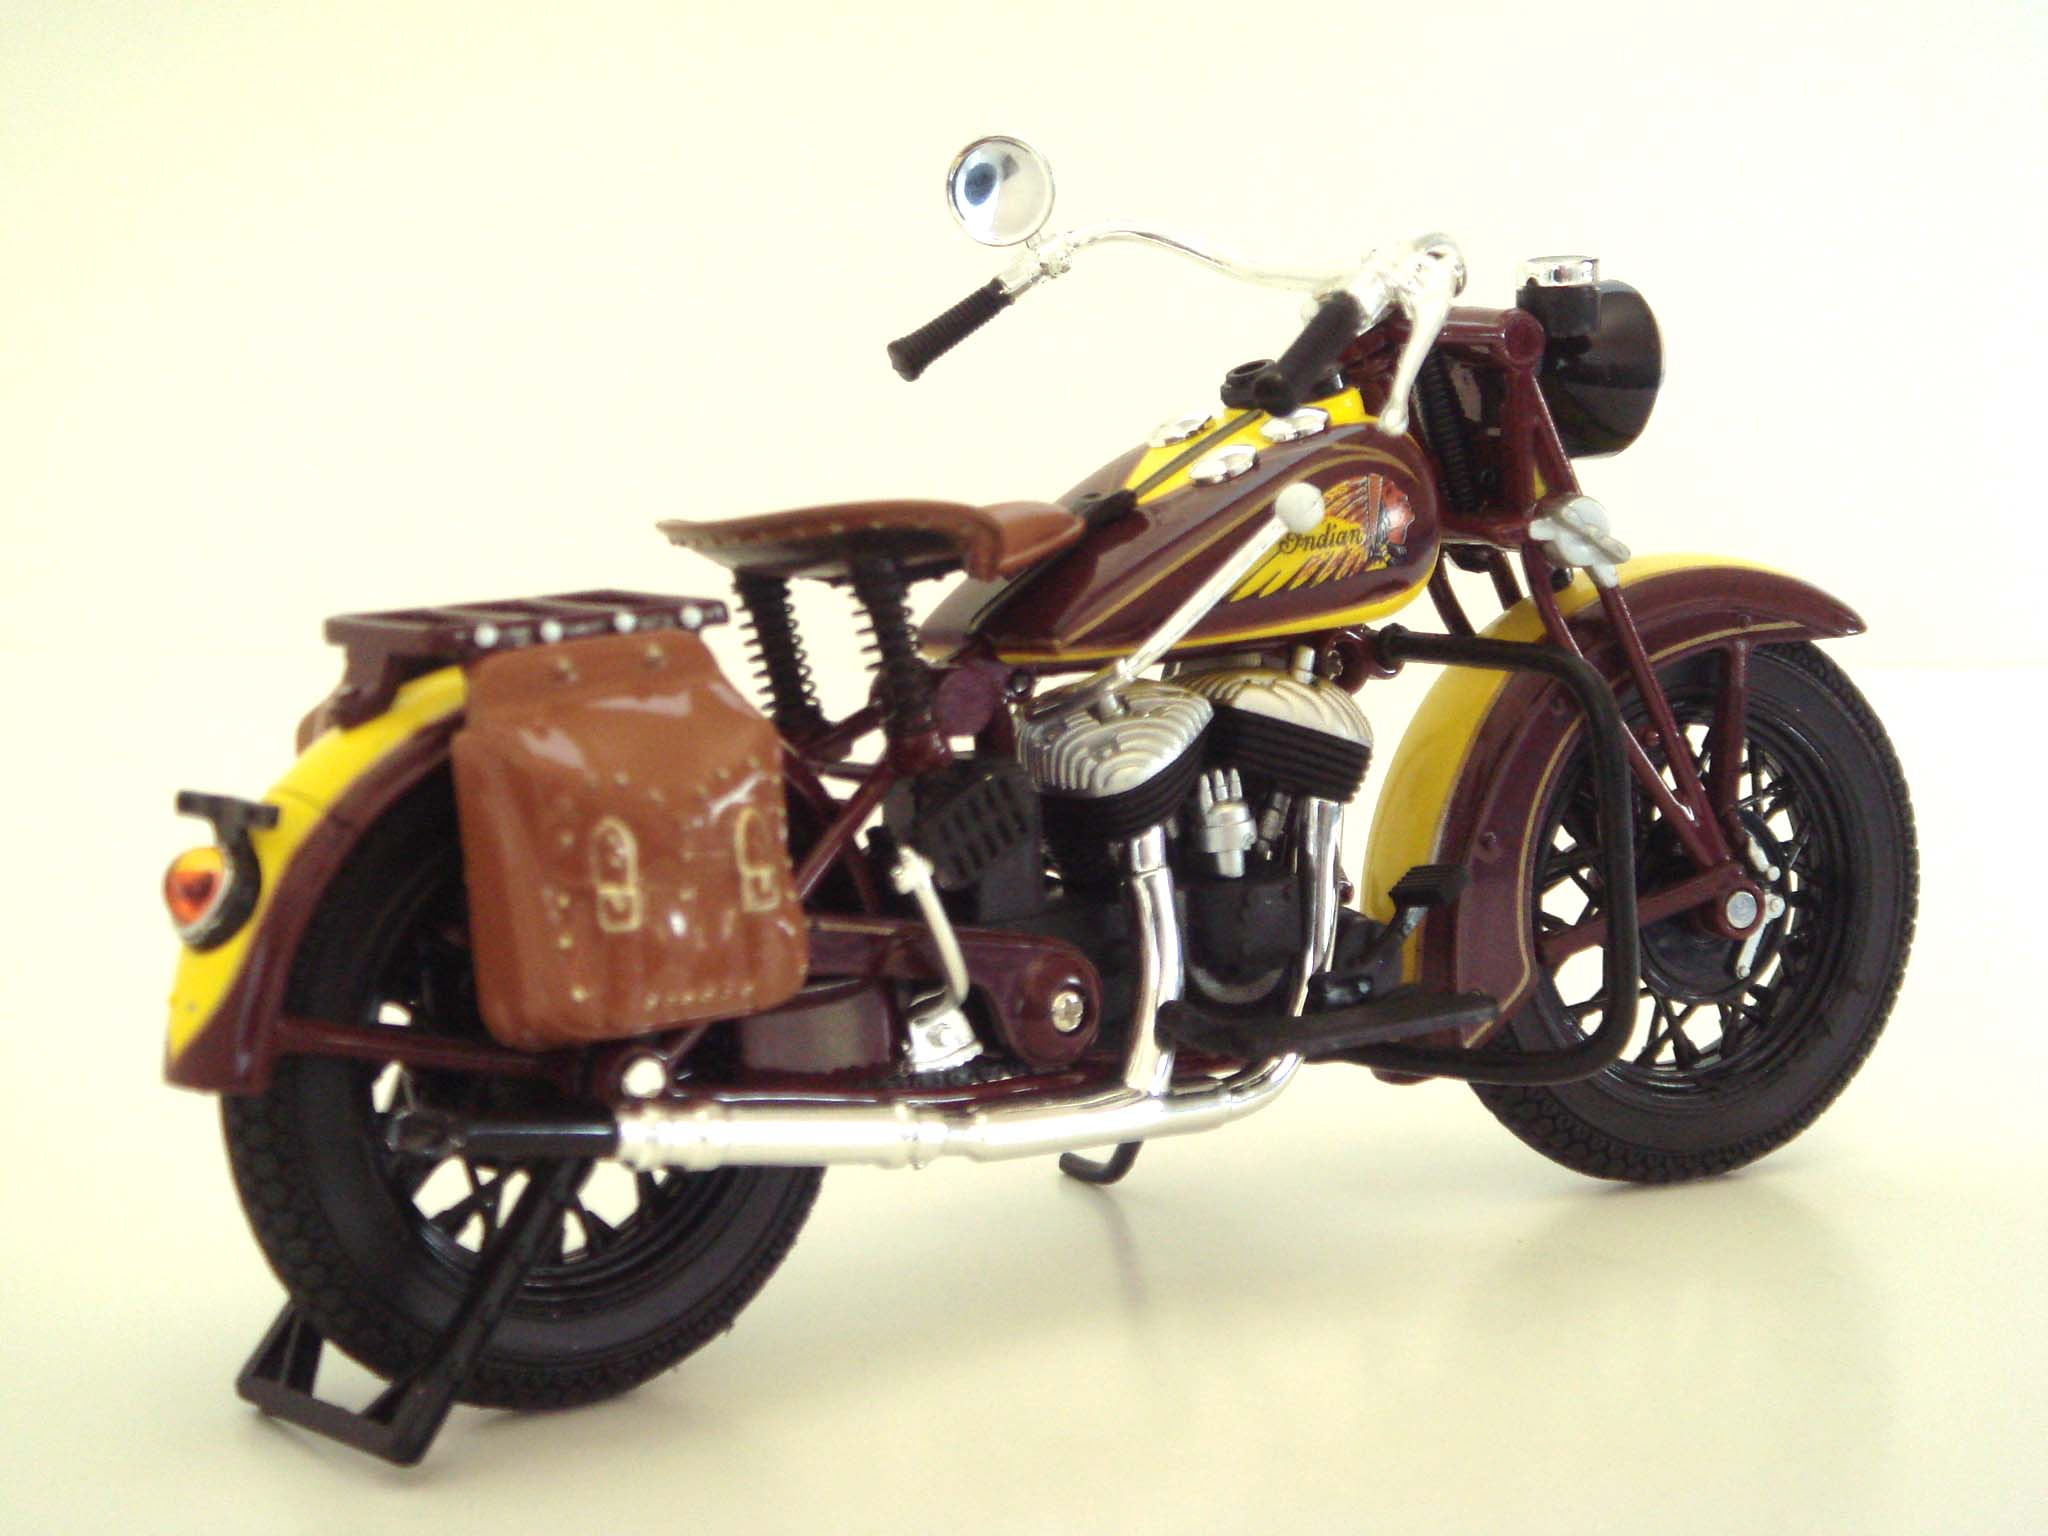 Vintage 1934 Indian Sport Scout Motorcycle Model